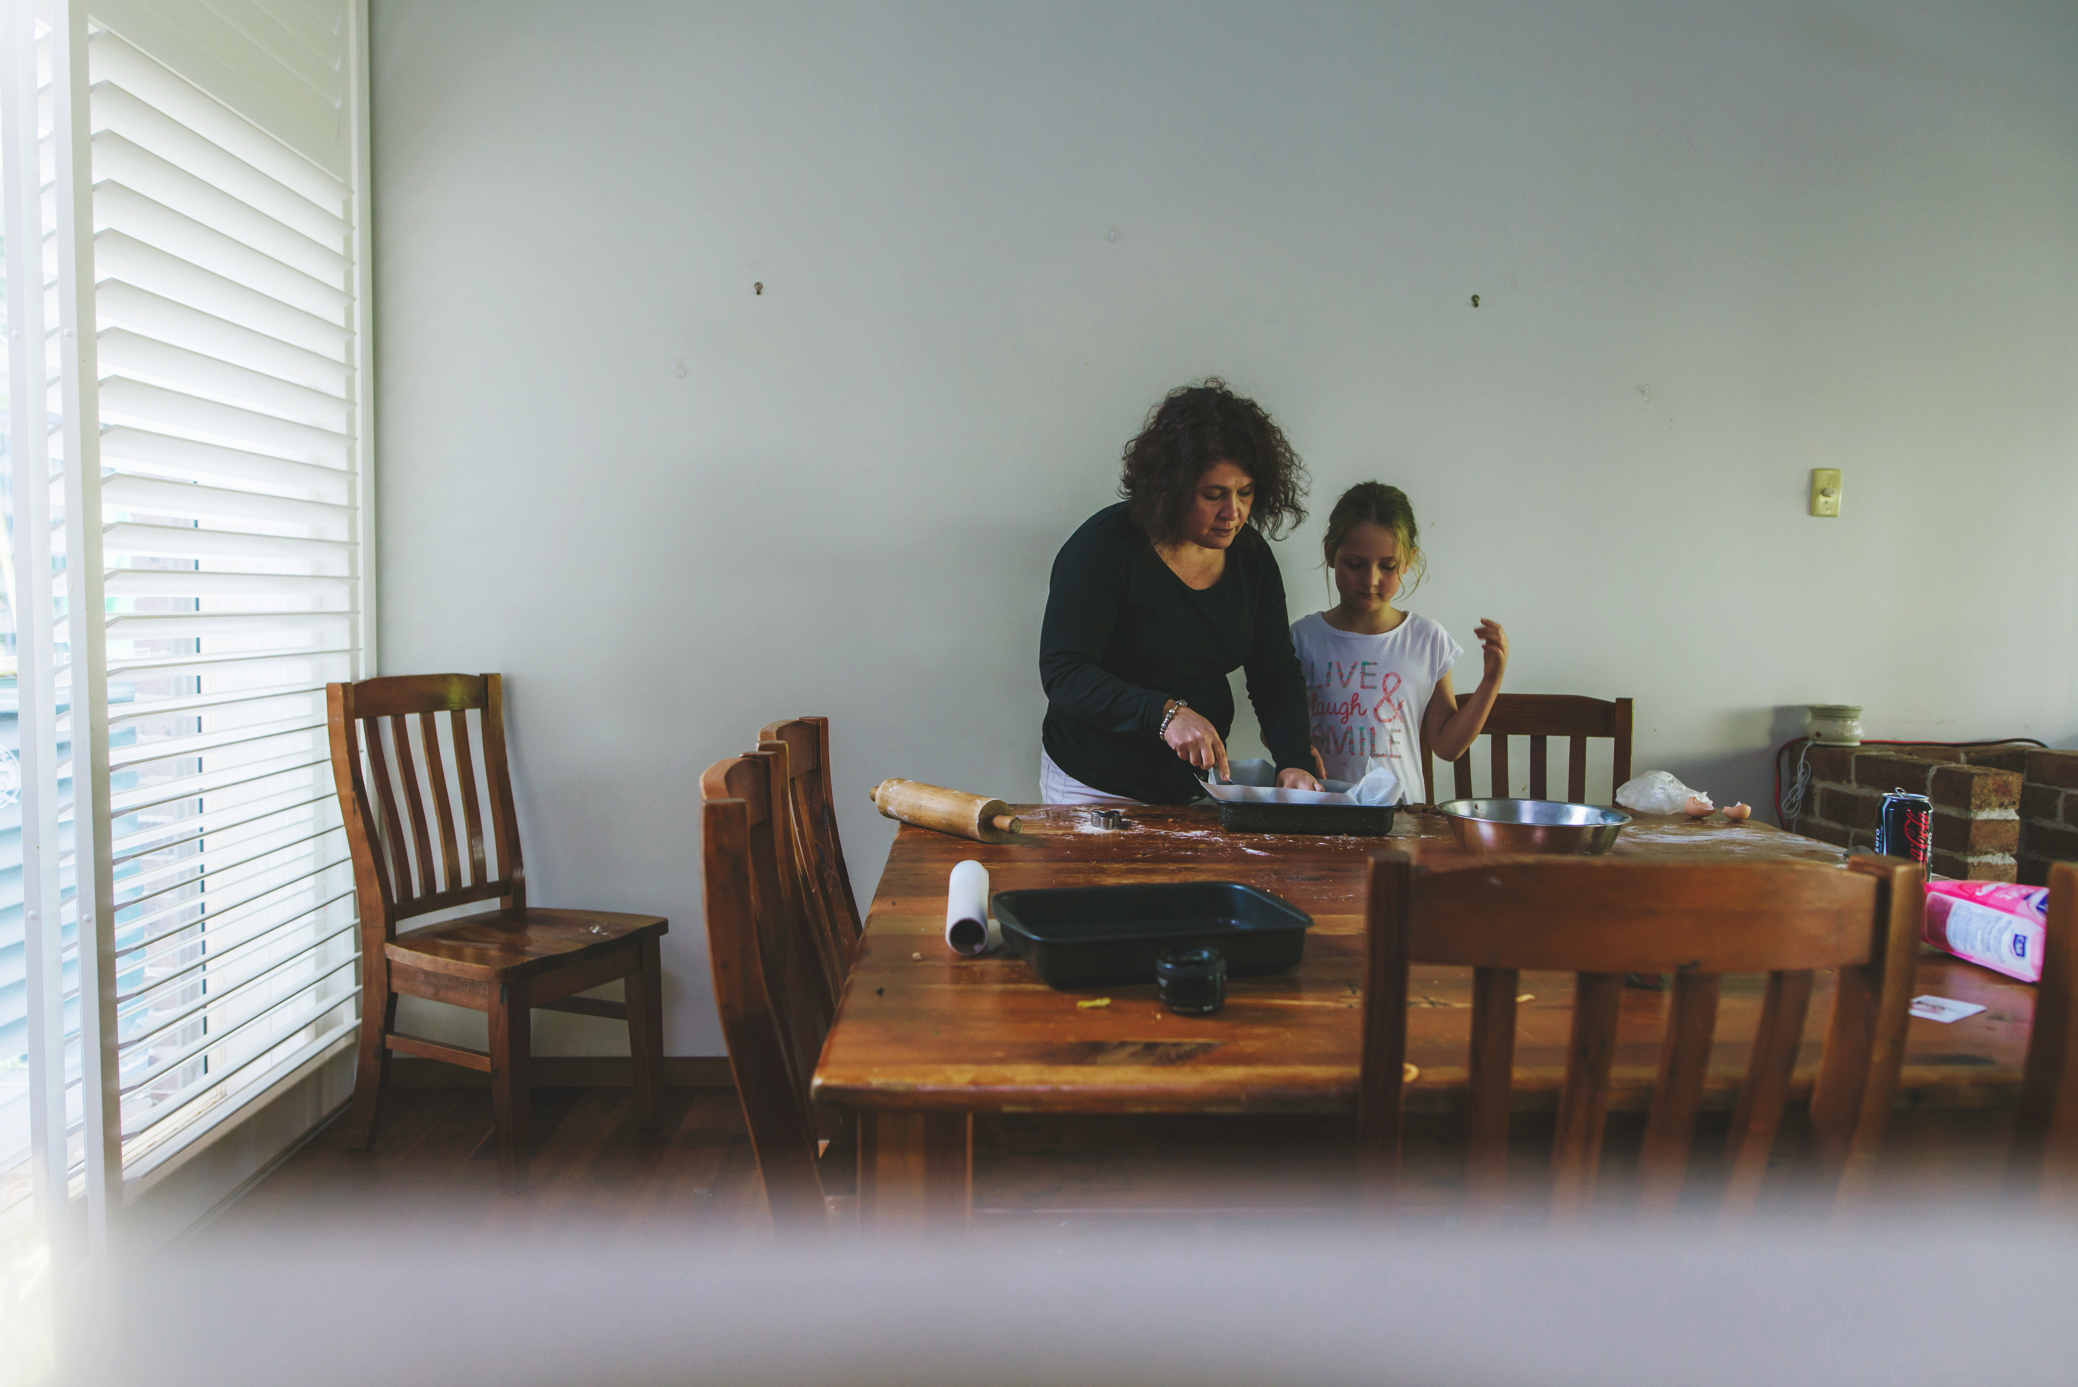 Family photography in Sydney by Cindy Cavanagh. A mother and daughter baking in the kitchen.